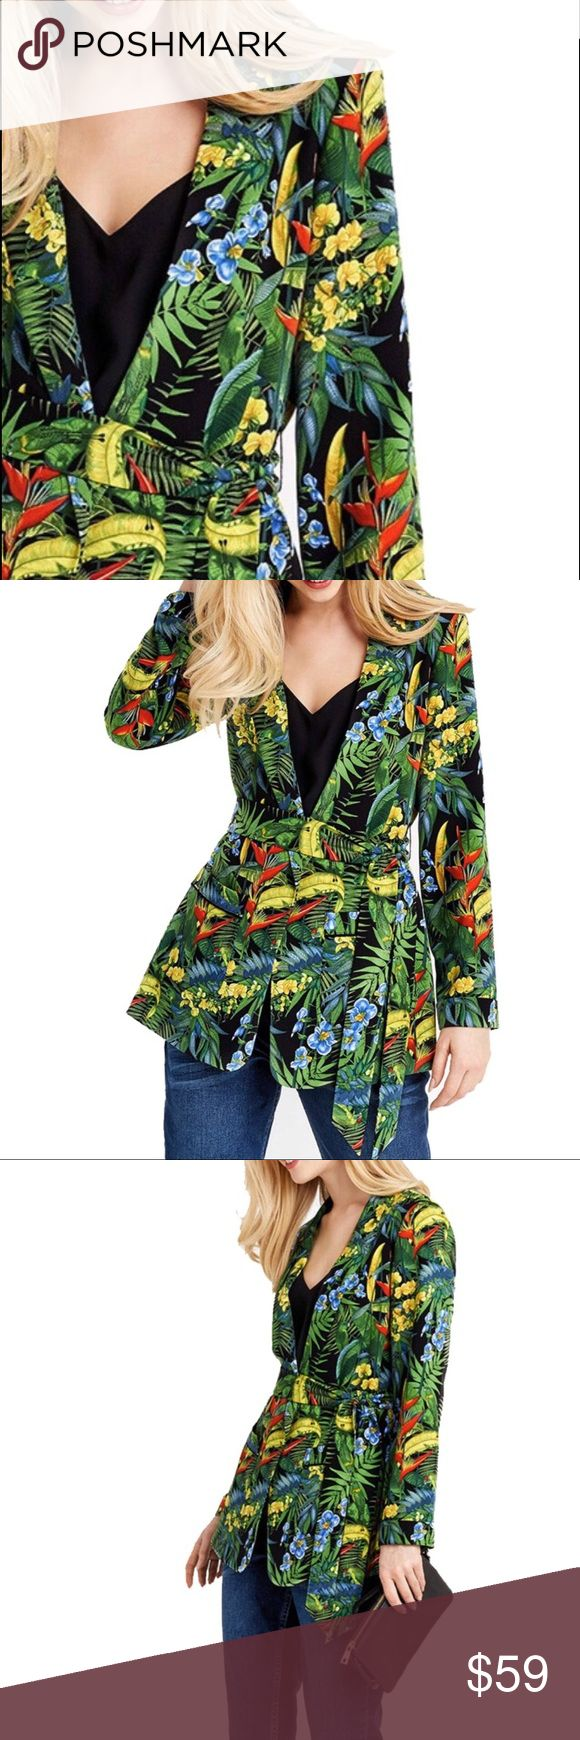 """Paradise Wrap Blazer vibrant paradise themed wrap blazer, cotton/spandex blend for comfort fit, coordinating belted sash, with pockets  🐇RESERVE out of stock sizes by purchasing any """"arriving🔜"""" option & it will automatically ship to you when its restocked. 🐢If you choose not to reserve, please be patient, priority stock goes to reserves first, then what is left will reflect in my closet Jackets & Coats"""